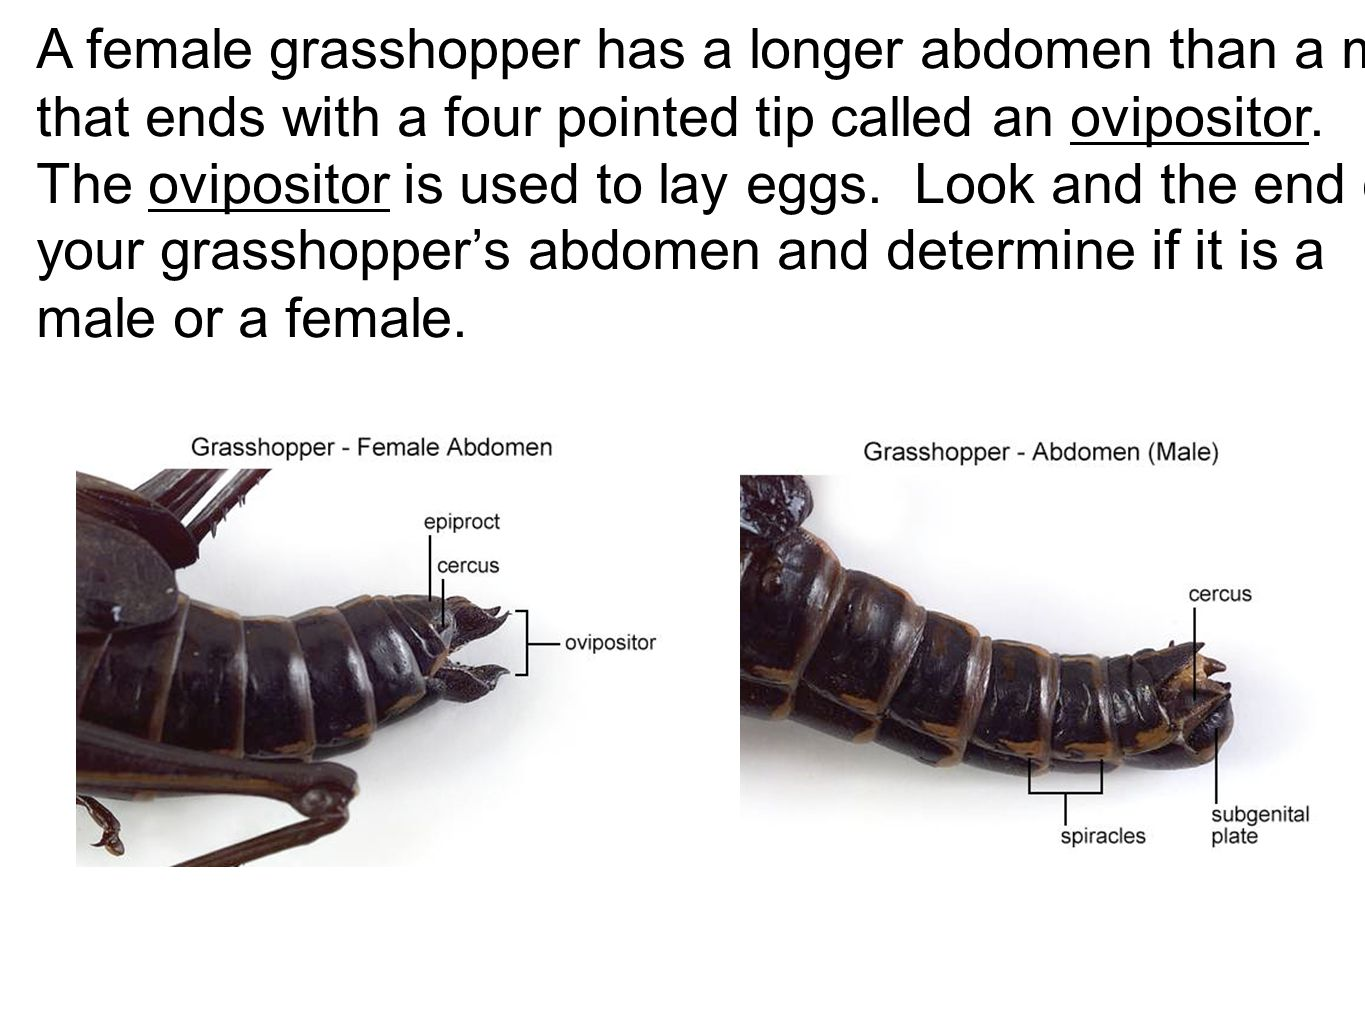 A female grasshopper has a longer abdomen than a male that ends with a four pointed tip called an ovipositor.